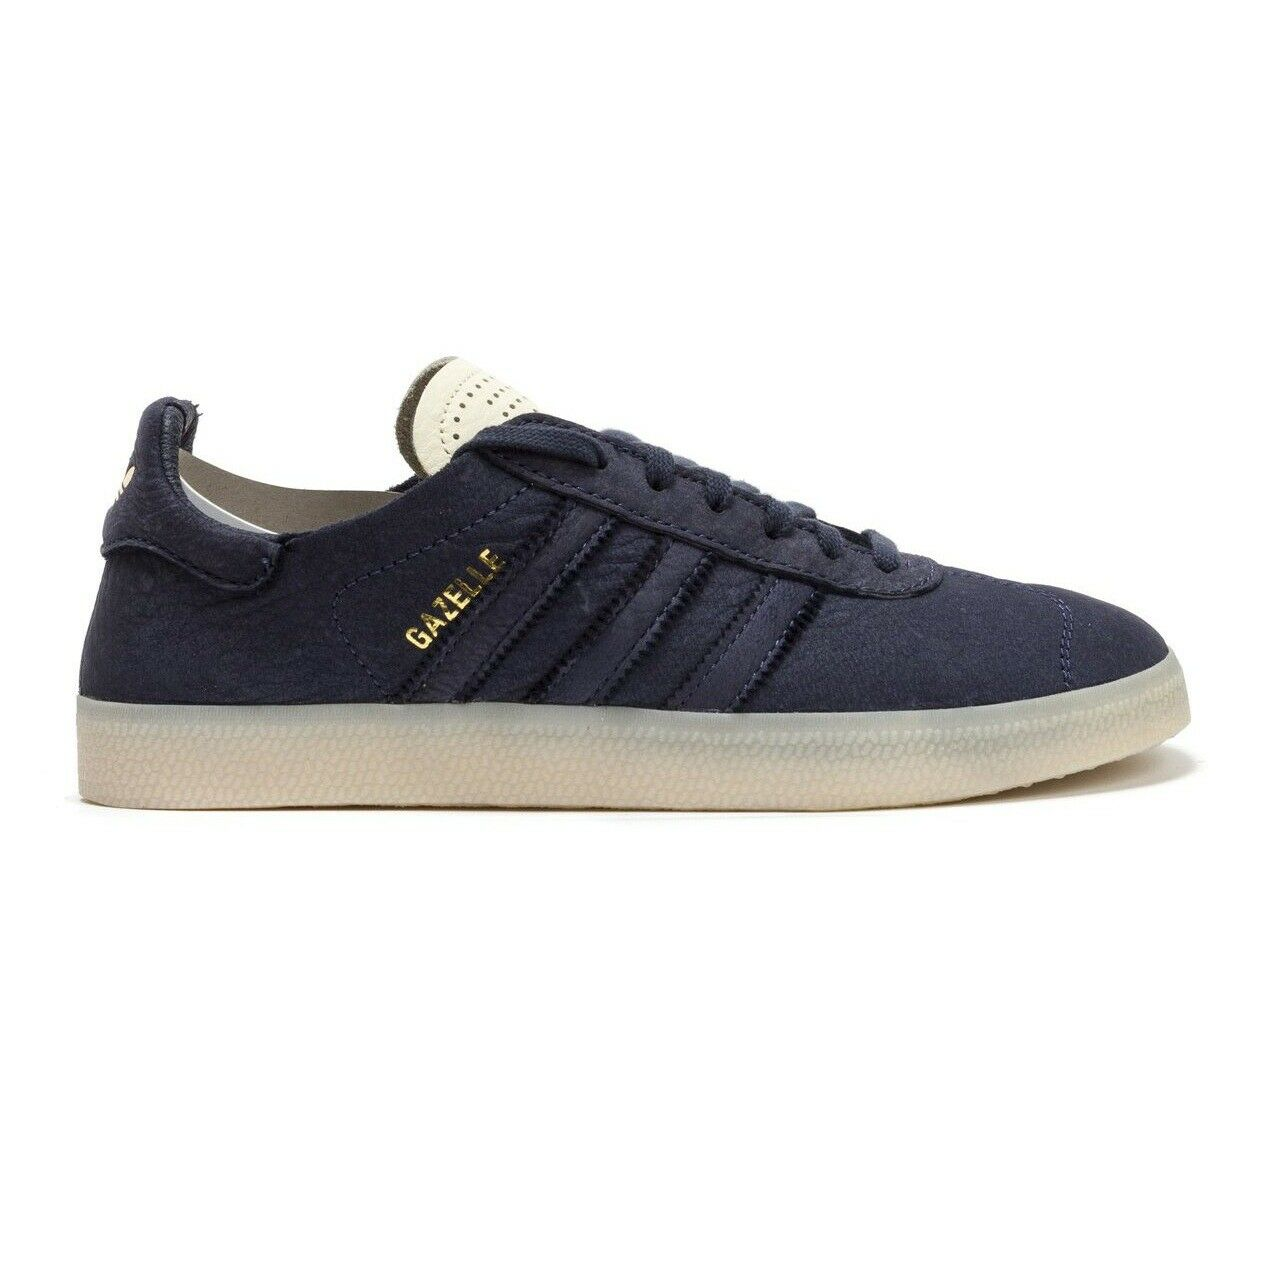 Adidas Originals Gazelle Crafted Charles F Stead LE Navy gold Mens Size 10.5